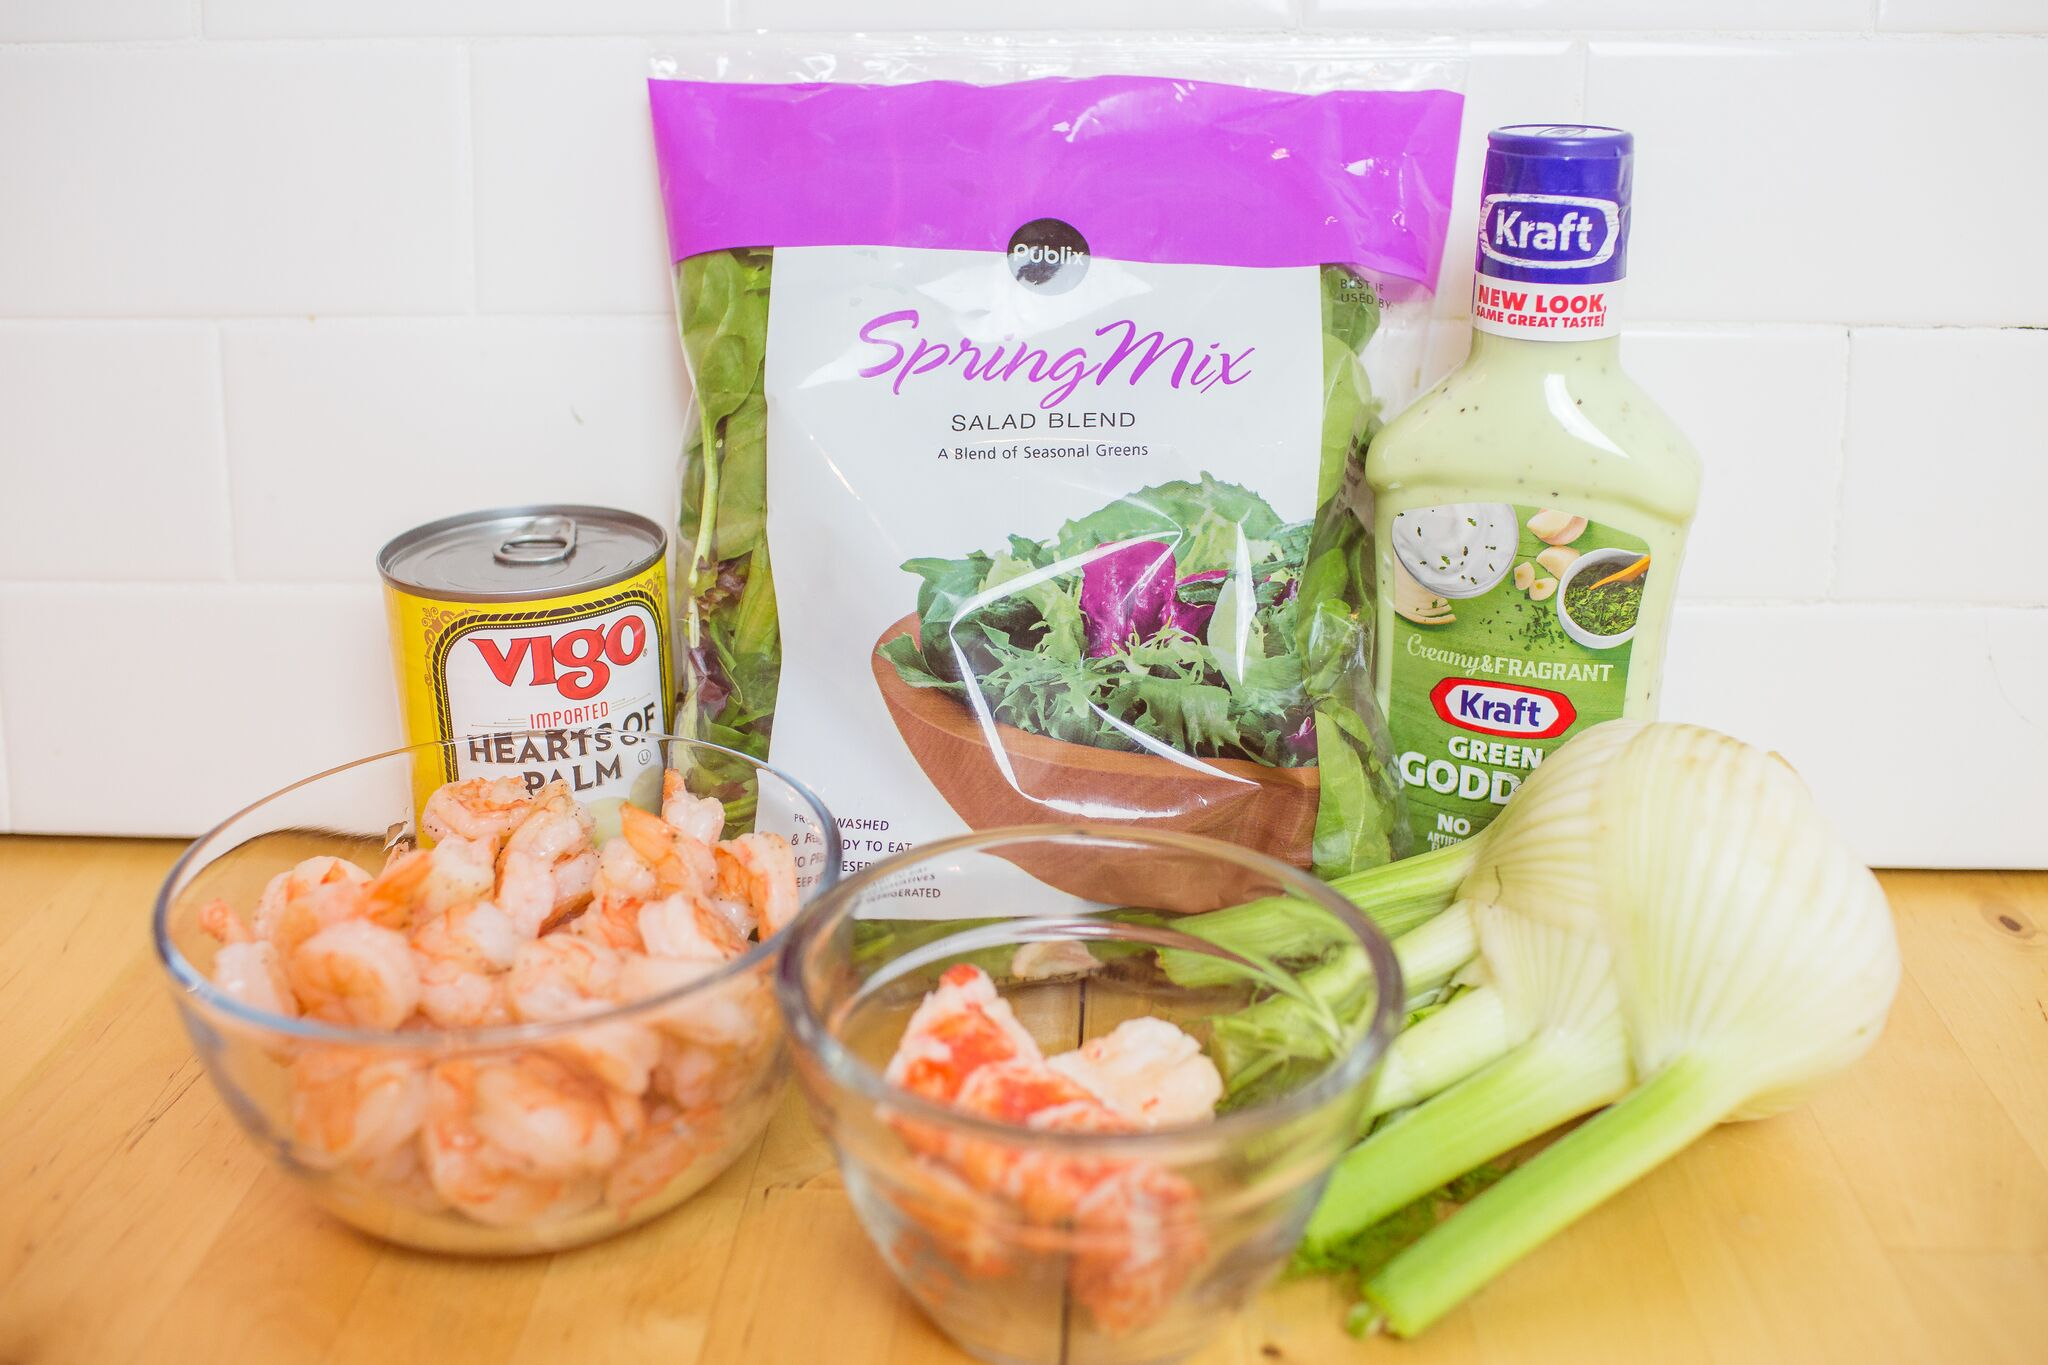 Assemble you fish salad ingredients: washed salad greens, fennel, hearts of palm, cooked shrimp, lobster tail and Green Goddess salad dressing.